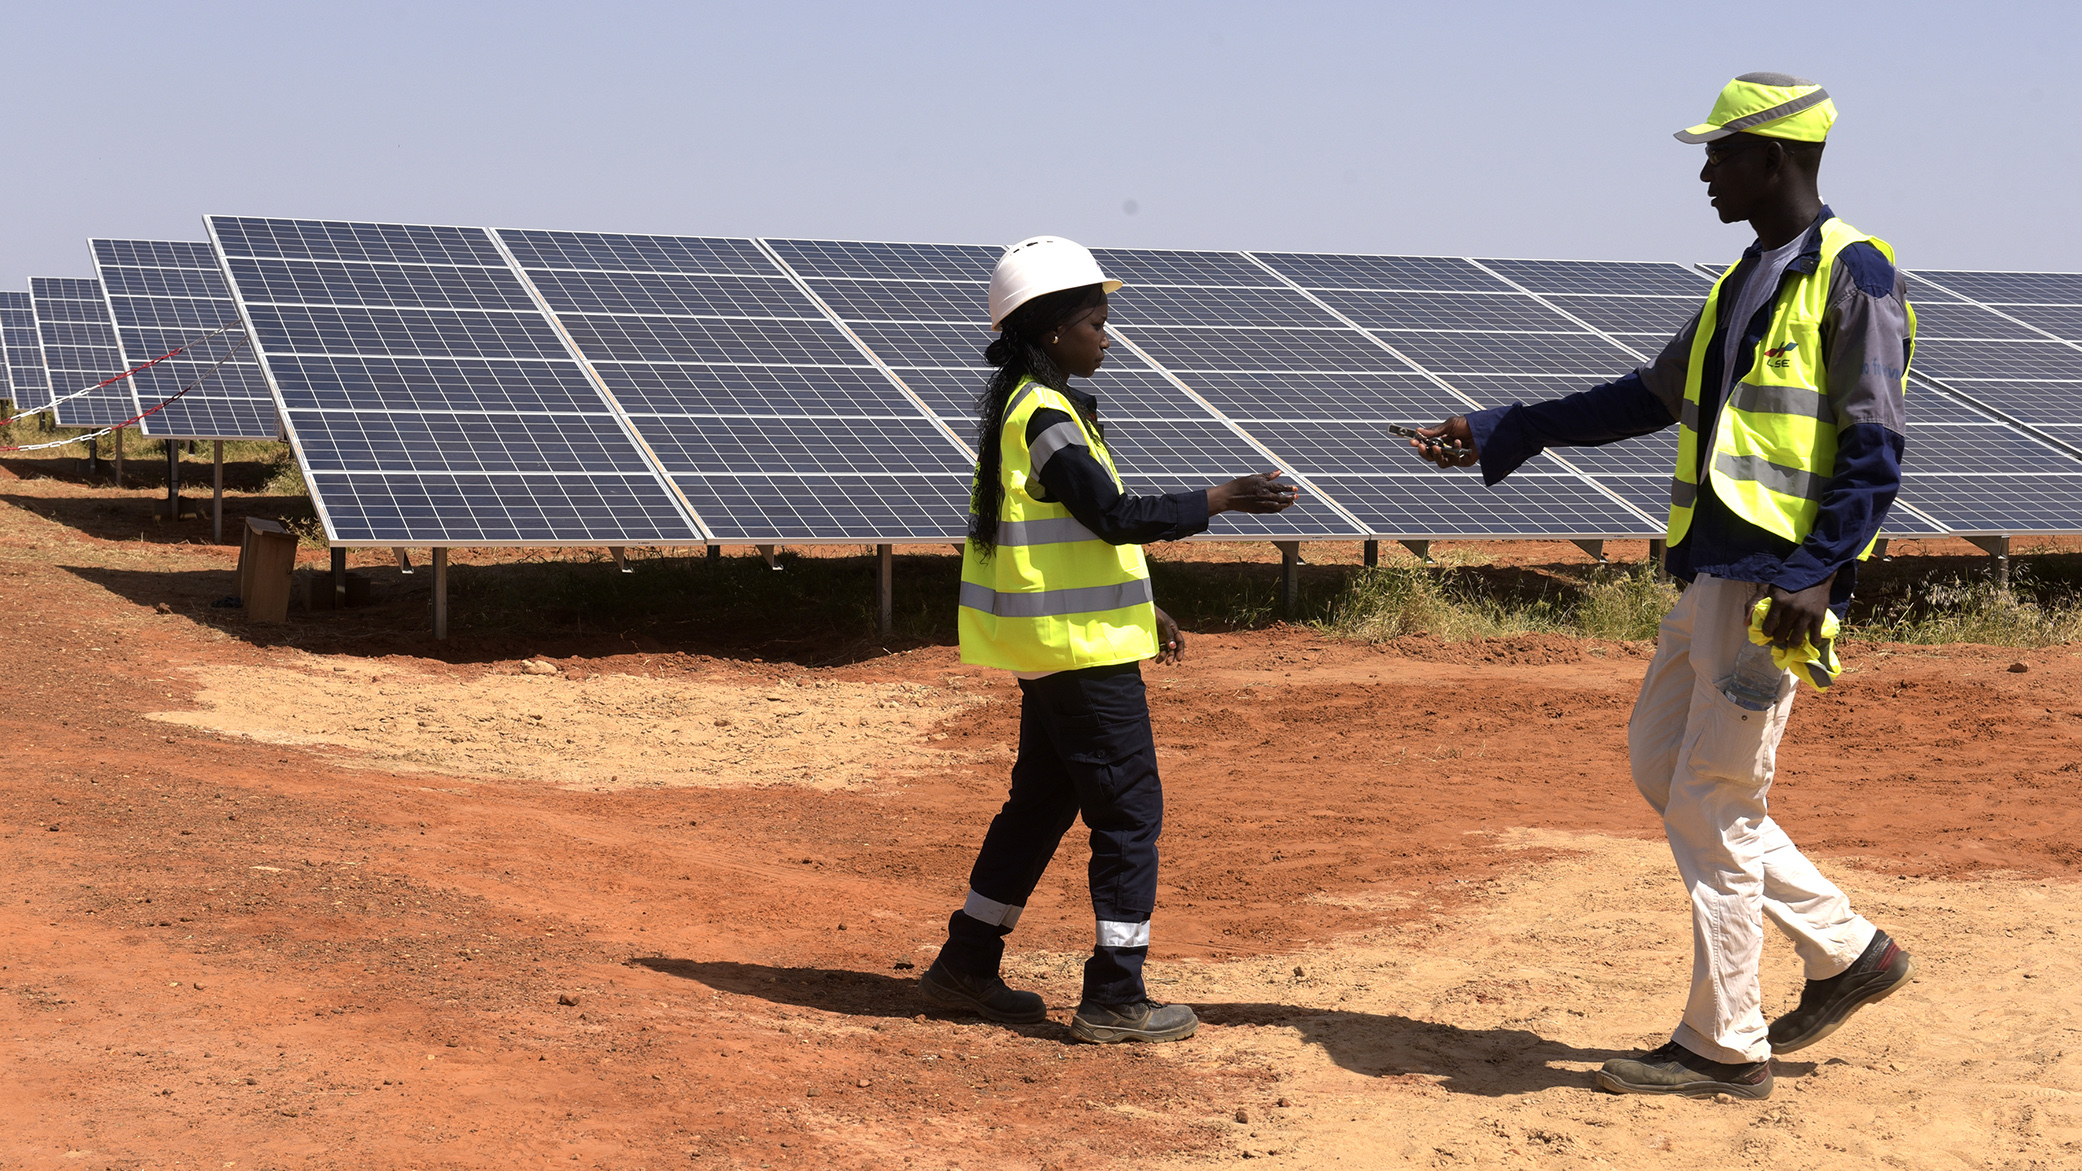 Technicians walk through solar panels in Senegal